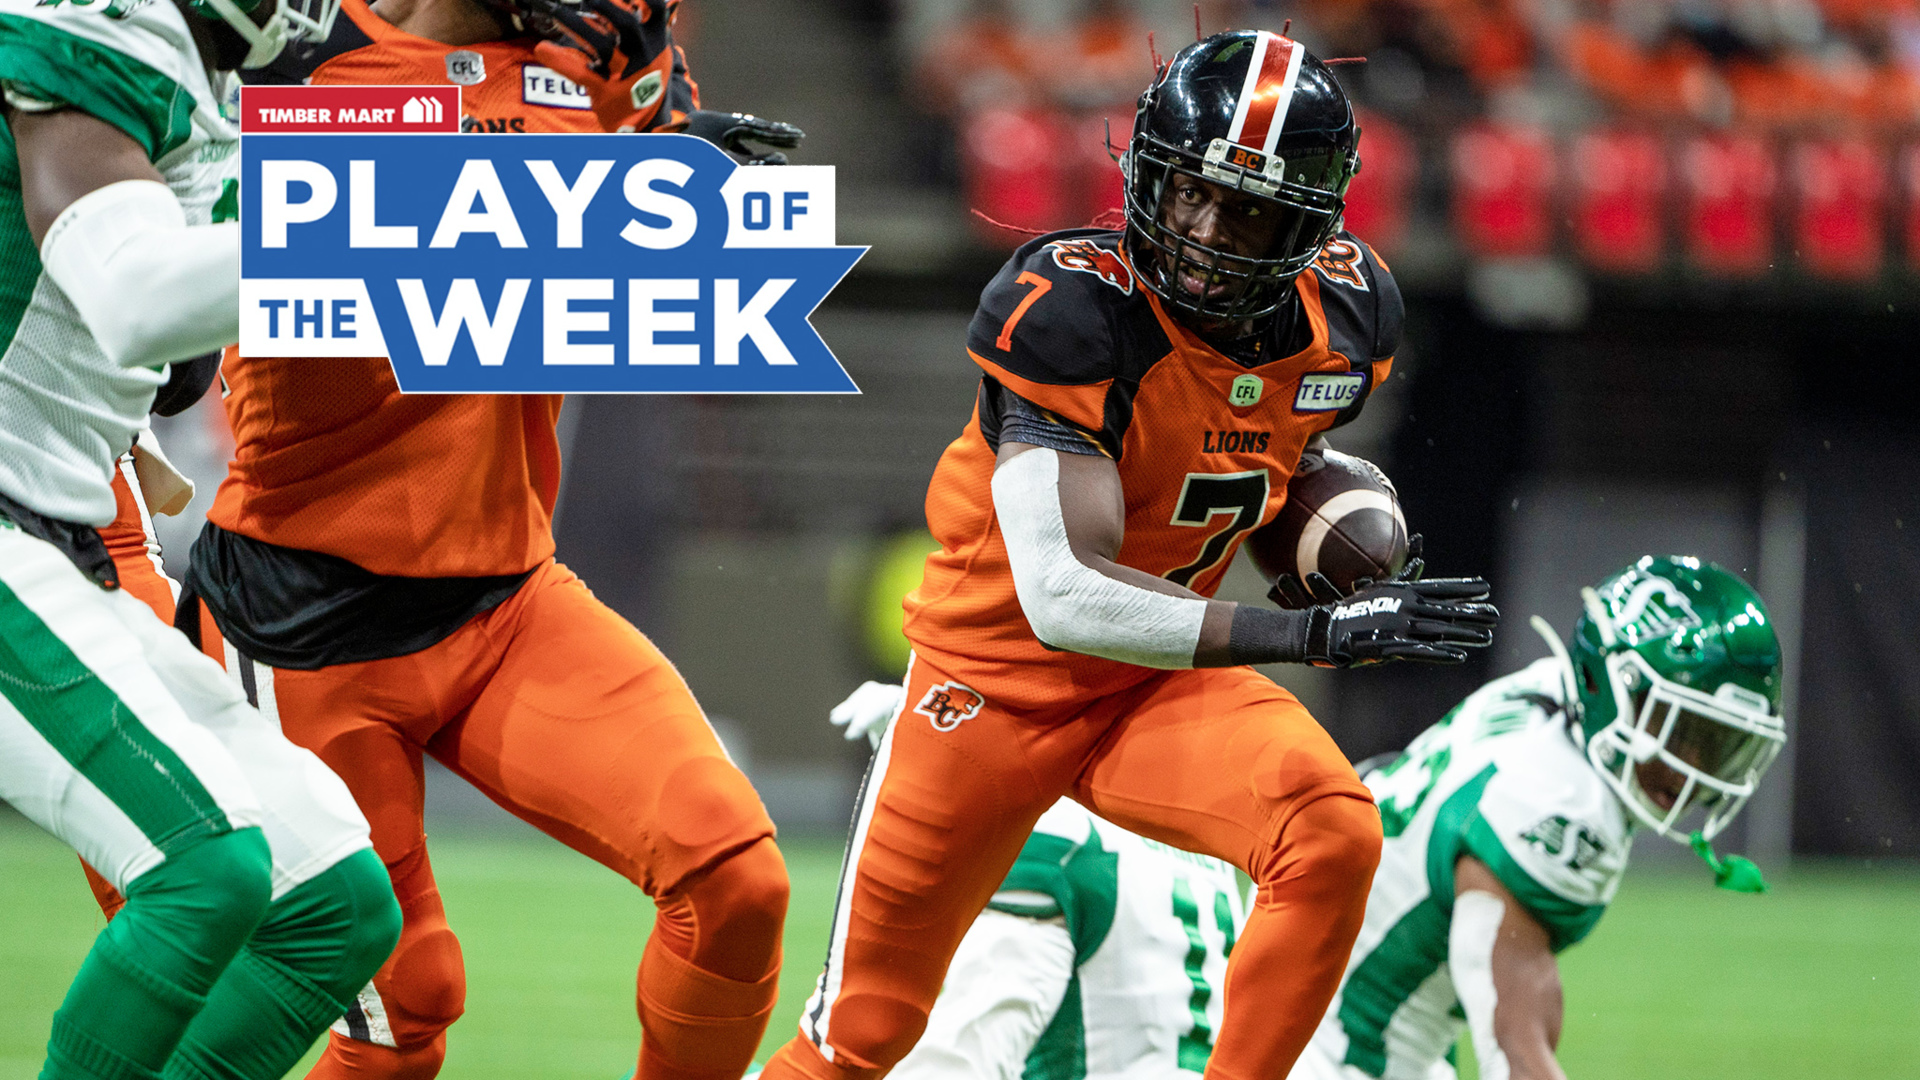 Serious speed on display in Timber Mart Plays of the Week